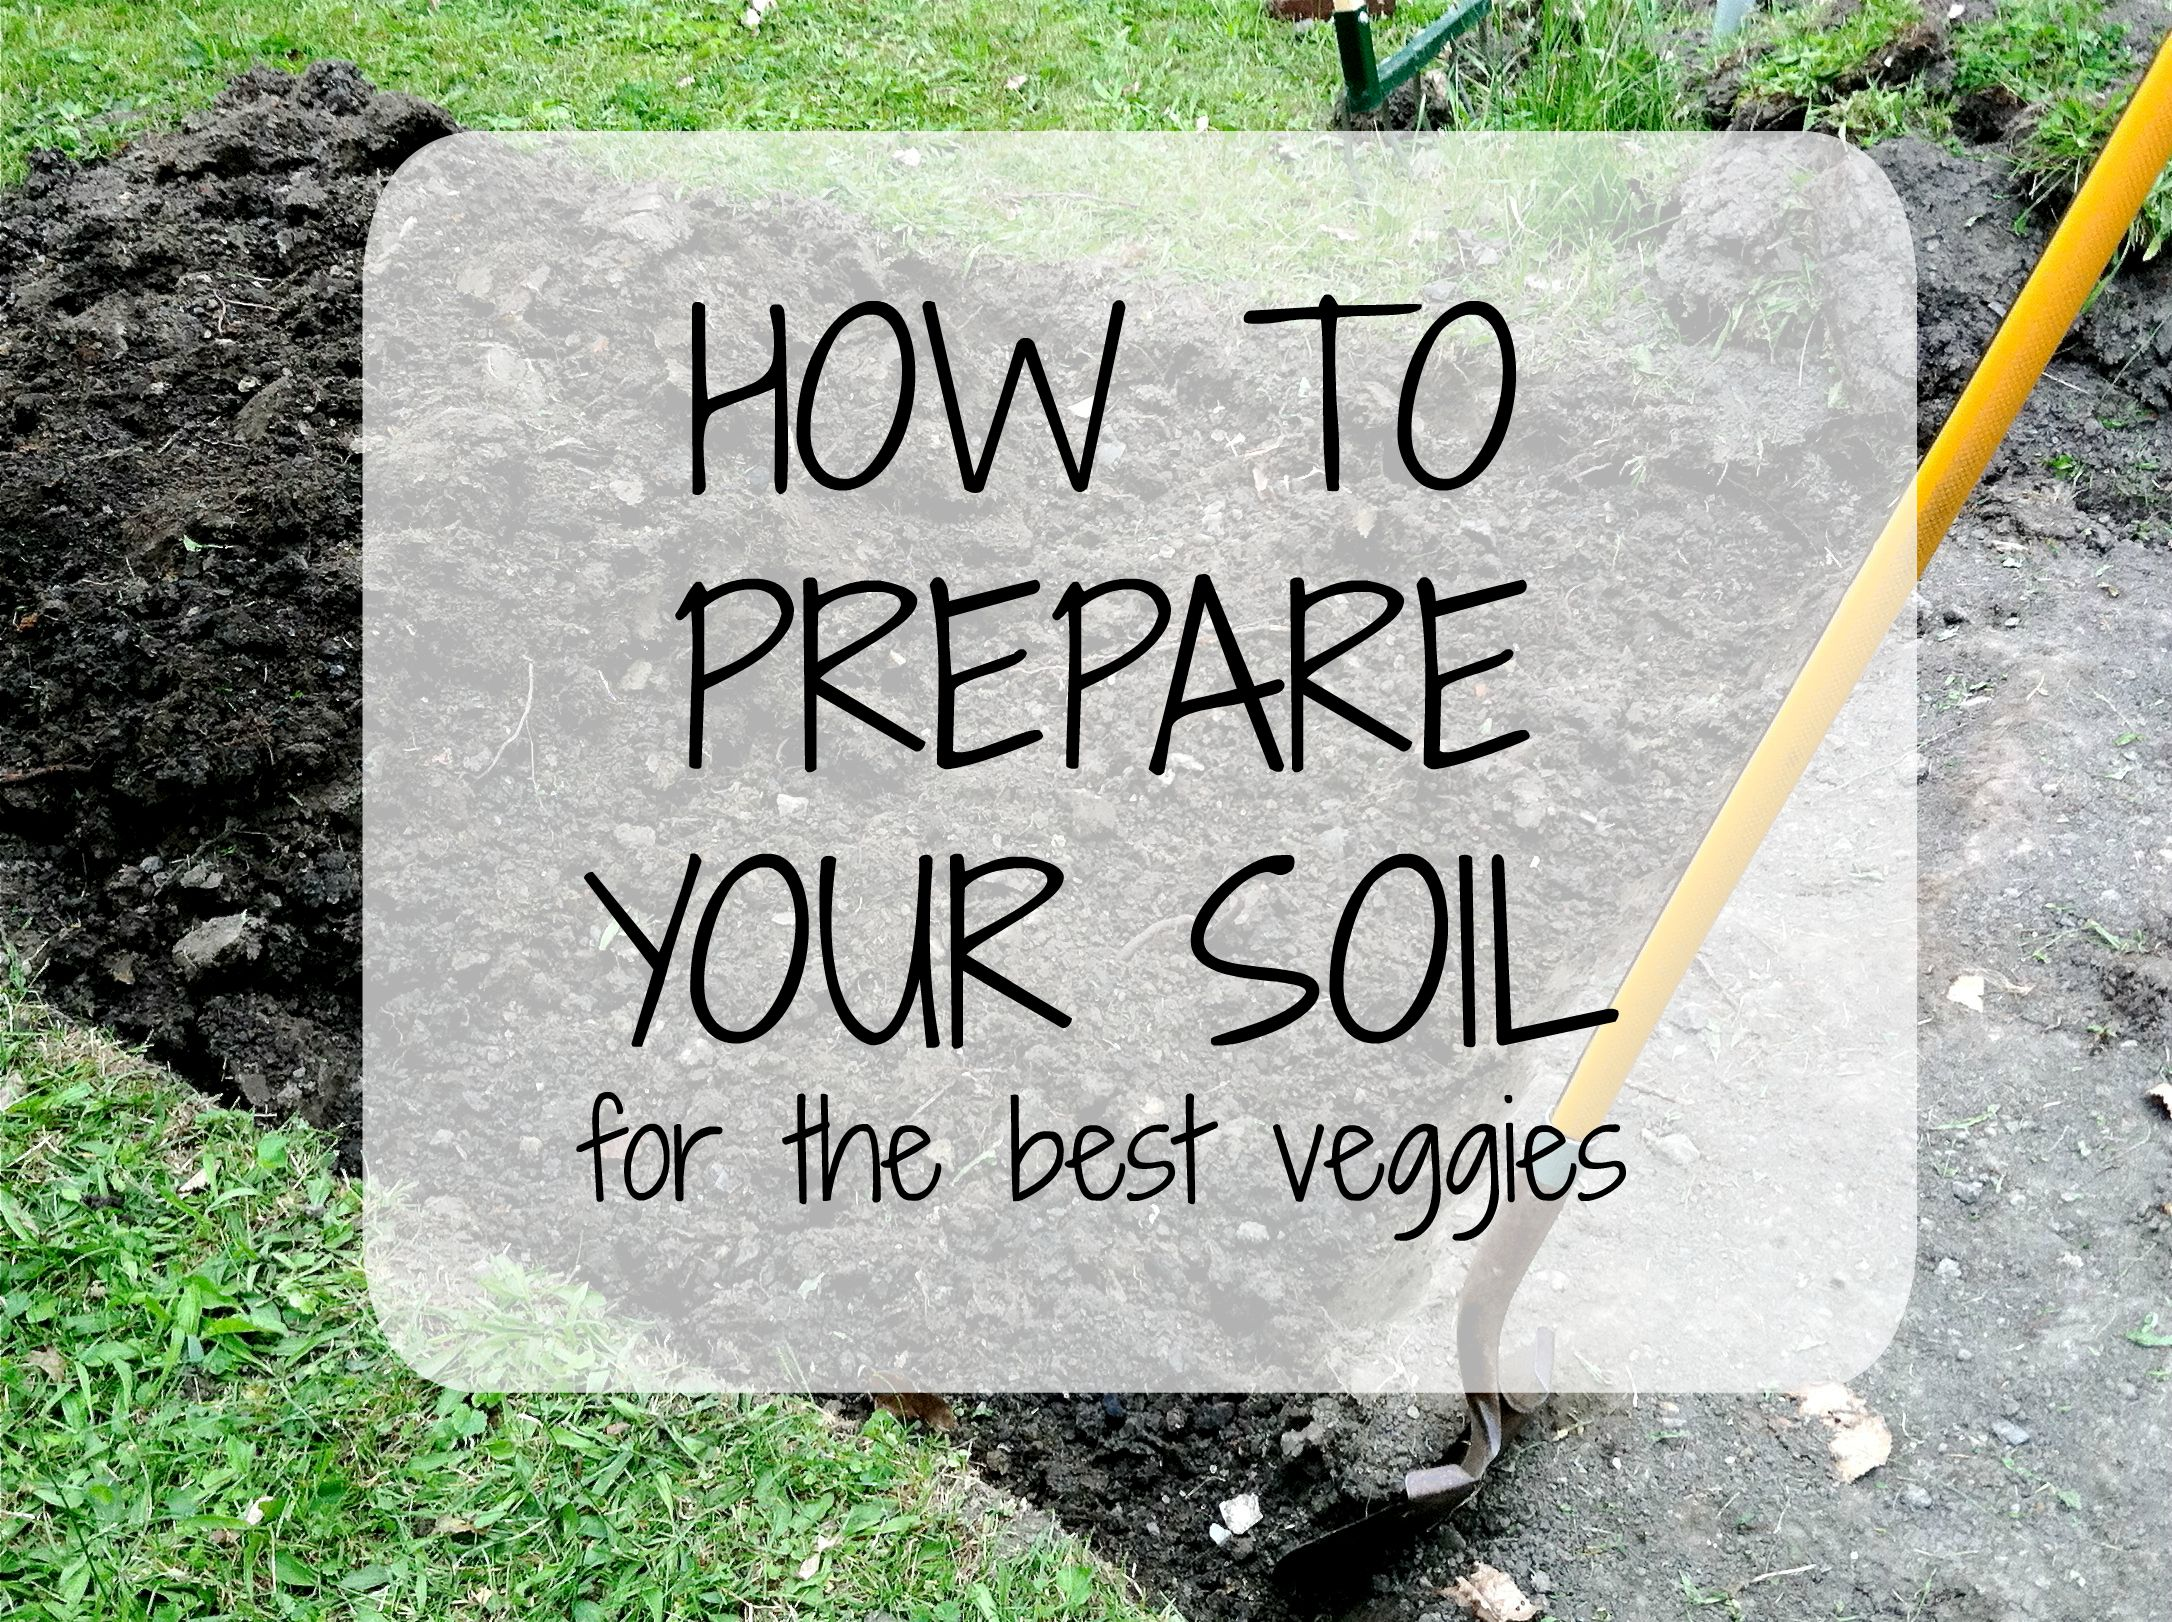 How to prepare your soil for the best veggies